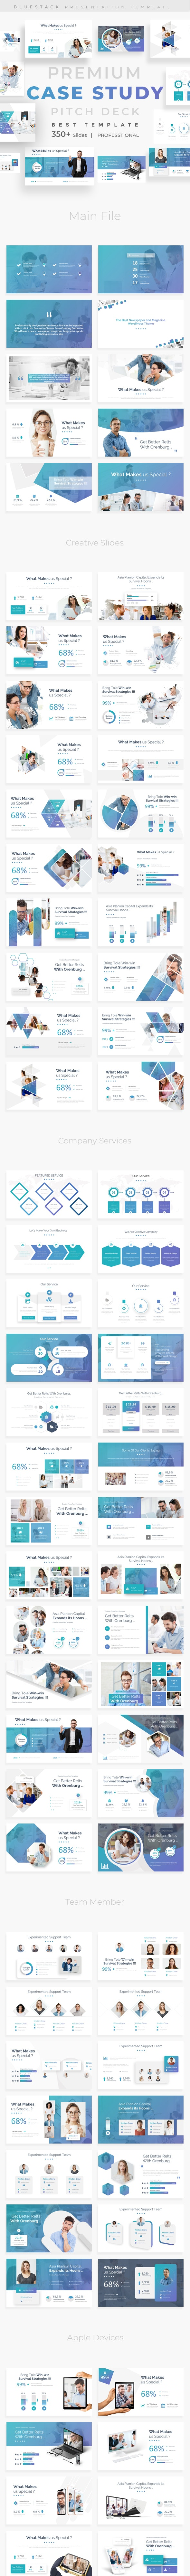 Case Study Pitch Deck Powerpoint Template - Business PowerPoint Templates